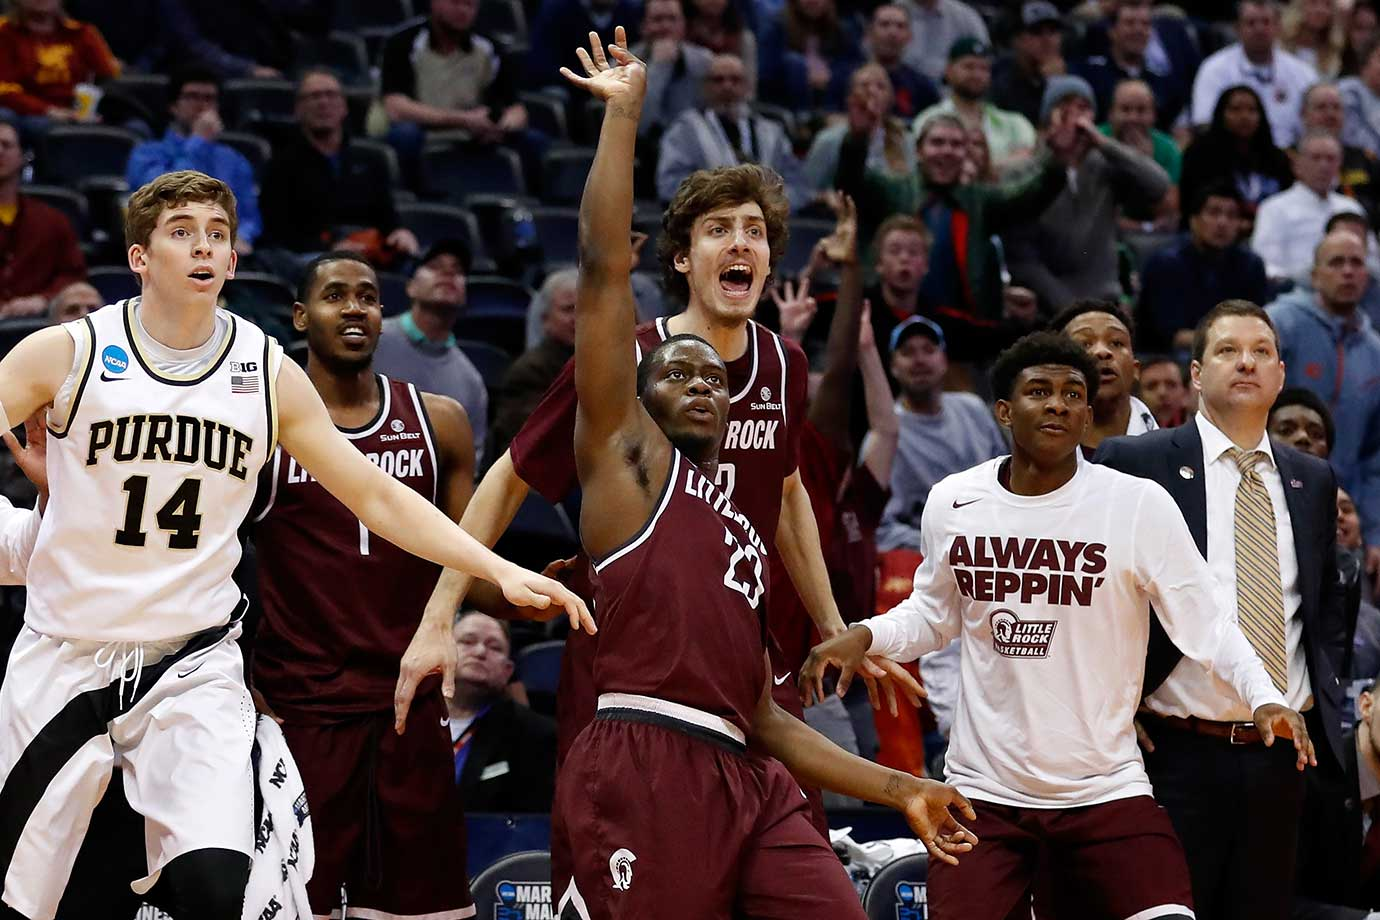 Kemy Osse of Arkansas Little Rock reacts after making a three-point shot over Ryan Cline of Purdue.